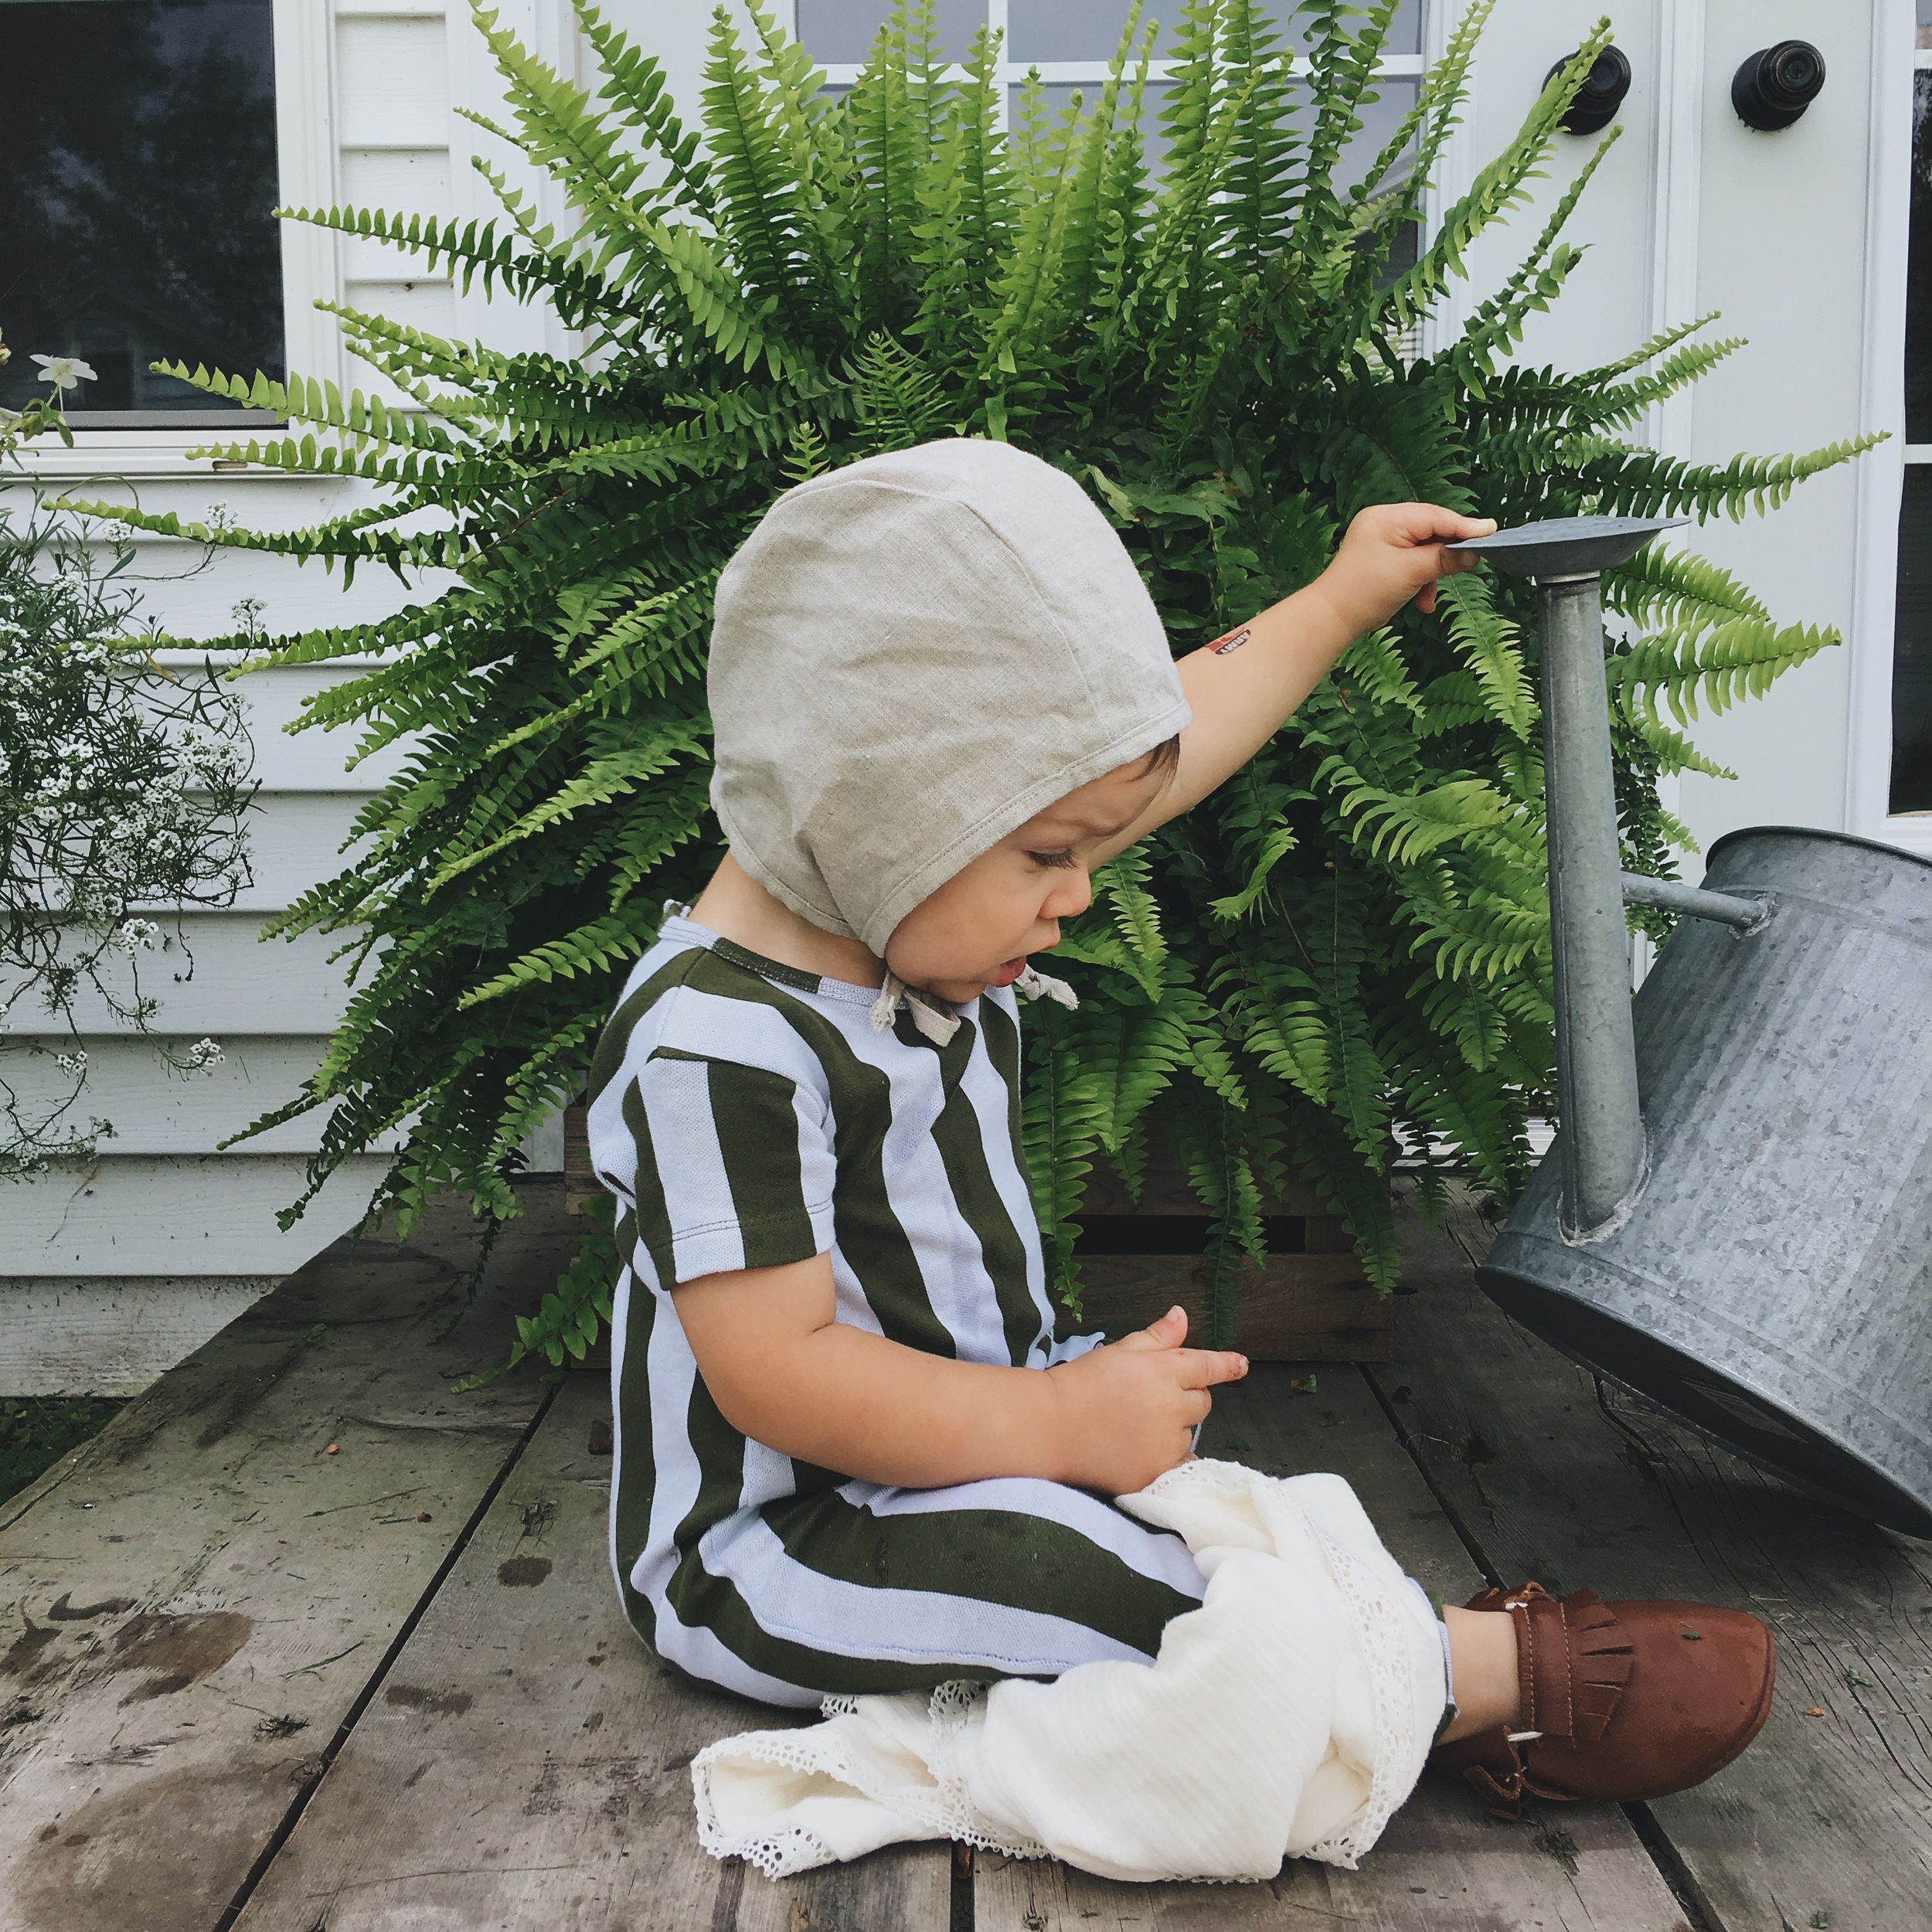 Linen Bonnet -  Under A Tin Roof  // Romper -  Tiny Cottons  c/o  Murray and Finn  //  Moccasins  c/o  Ulla + Viggo